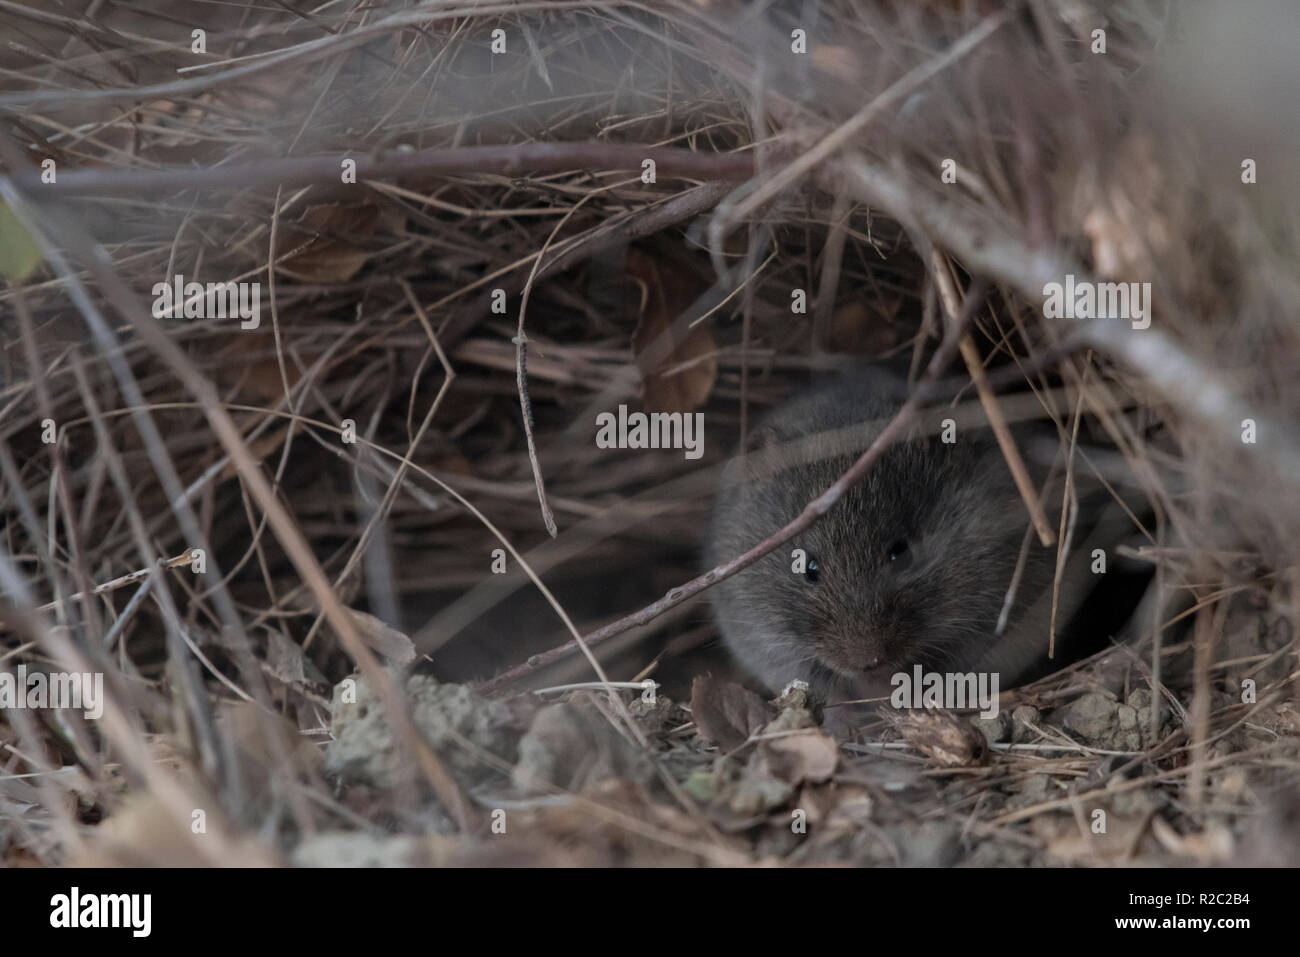 A california vole (Microtus californicus) hiding in the dry grass, this is the Bay area subspecies Microtus californicus californicus. - Stock Image